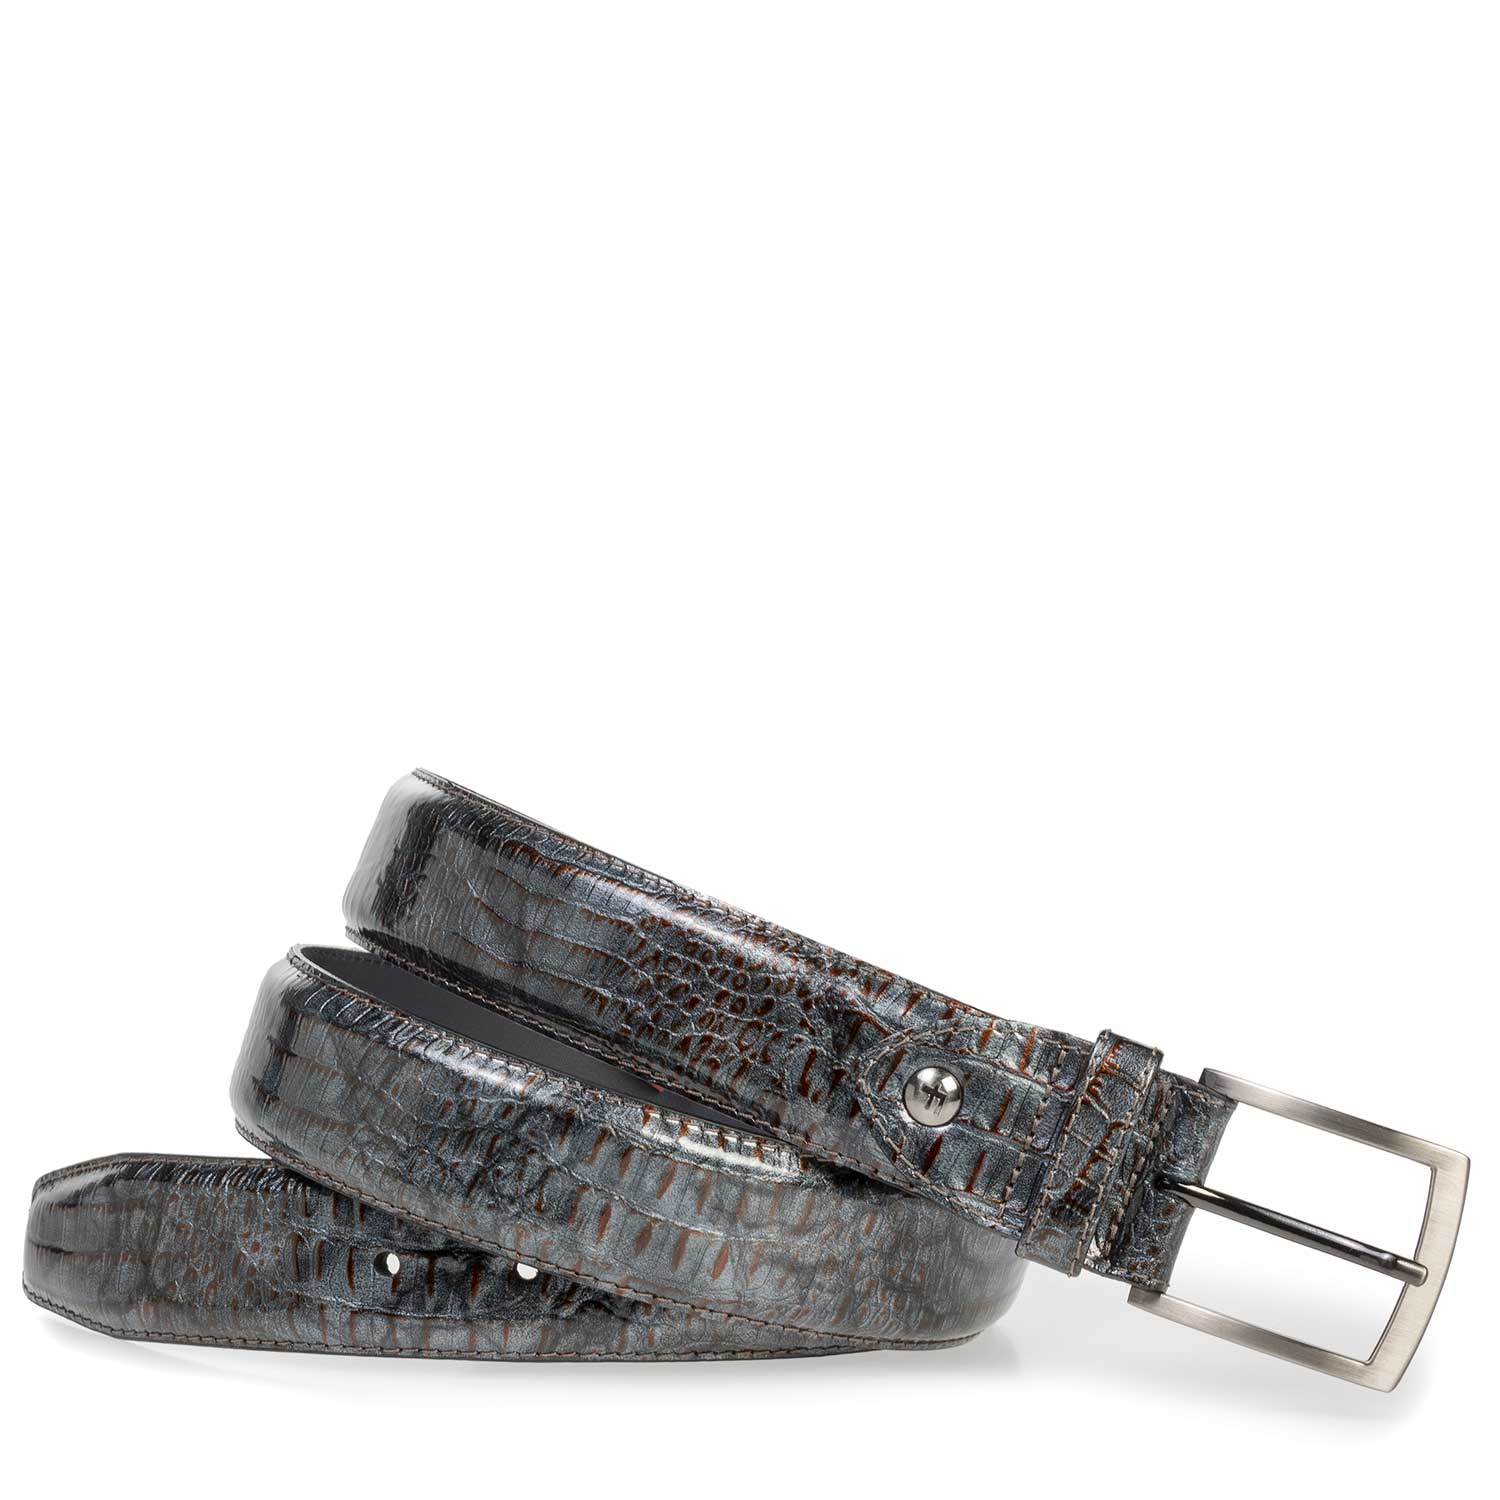 75201/16 - Grey patent leather belt with croco print